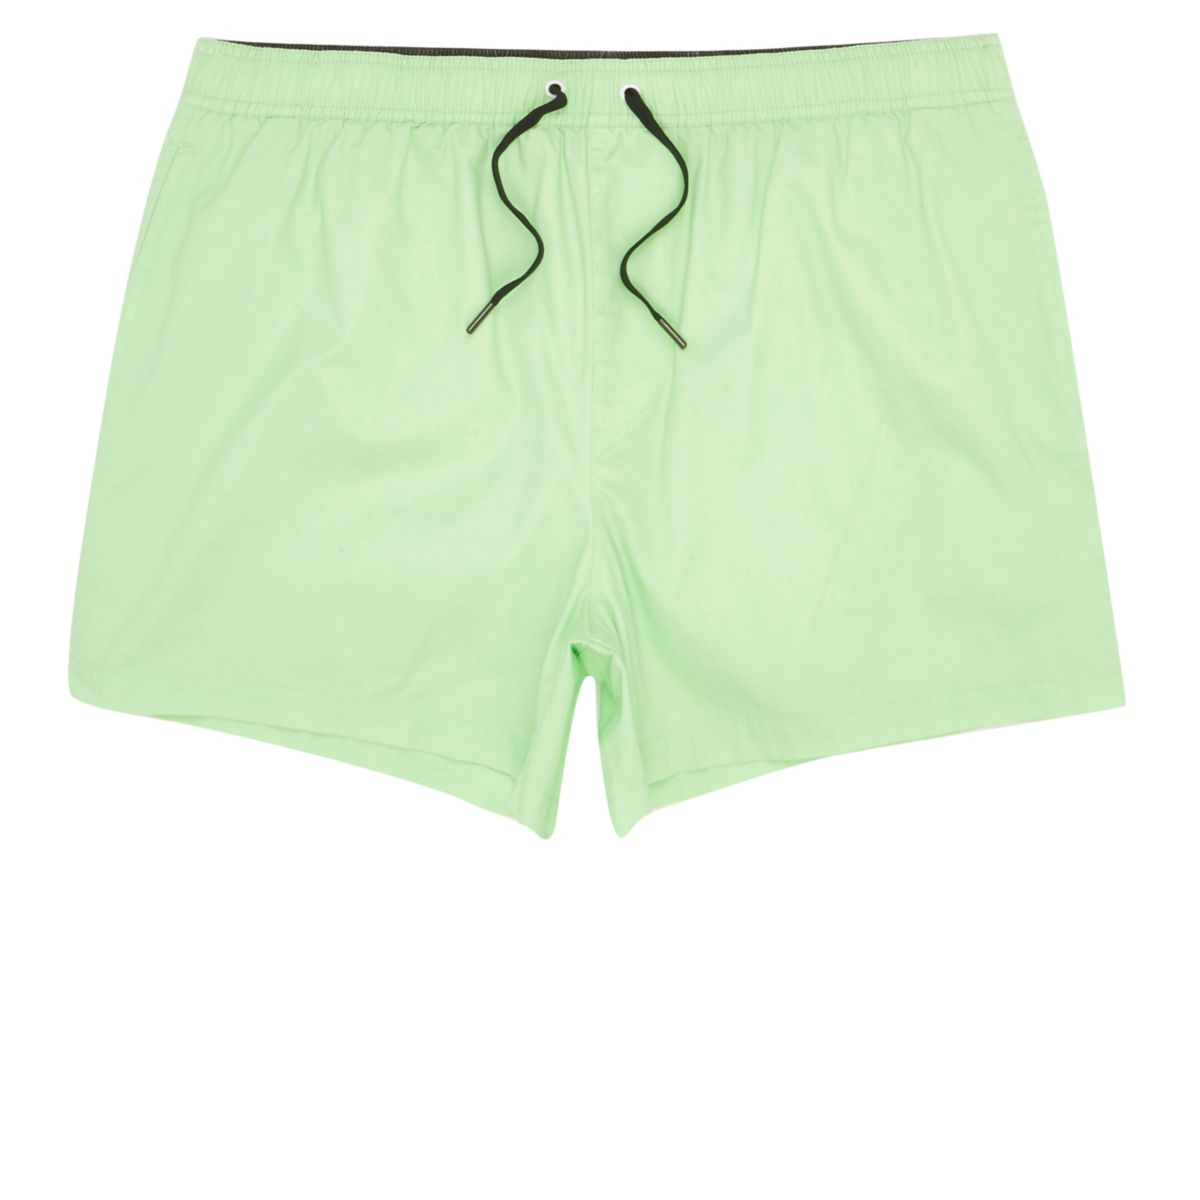 Green acid wash short swim trunks